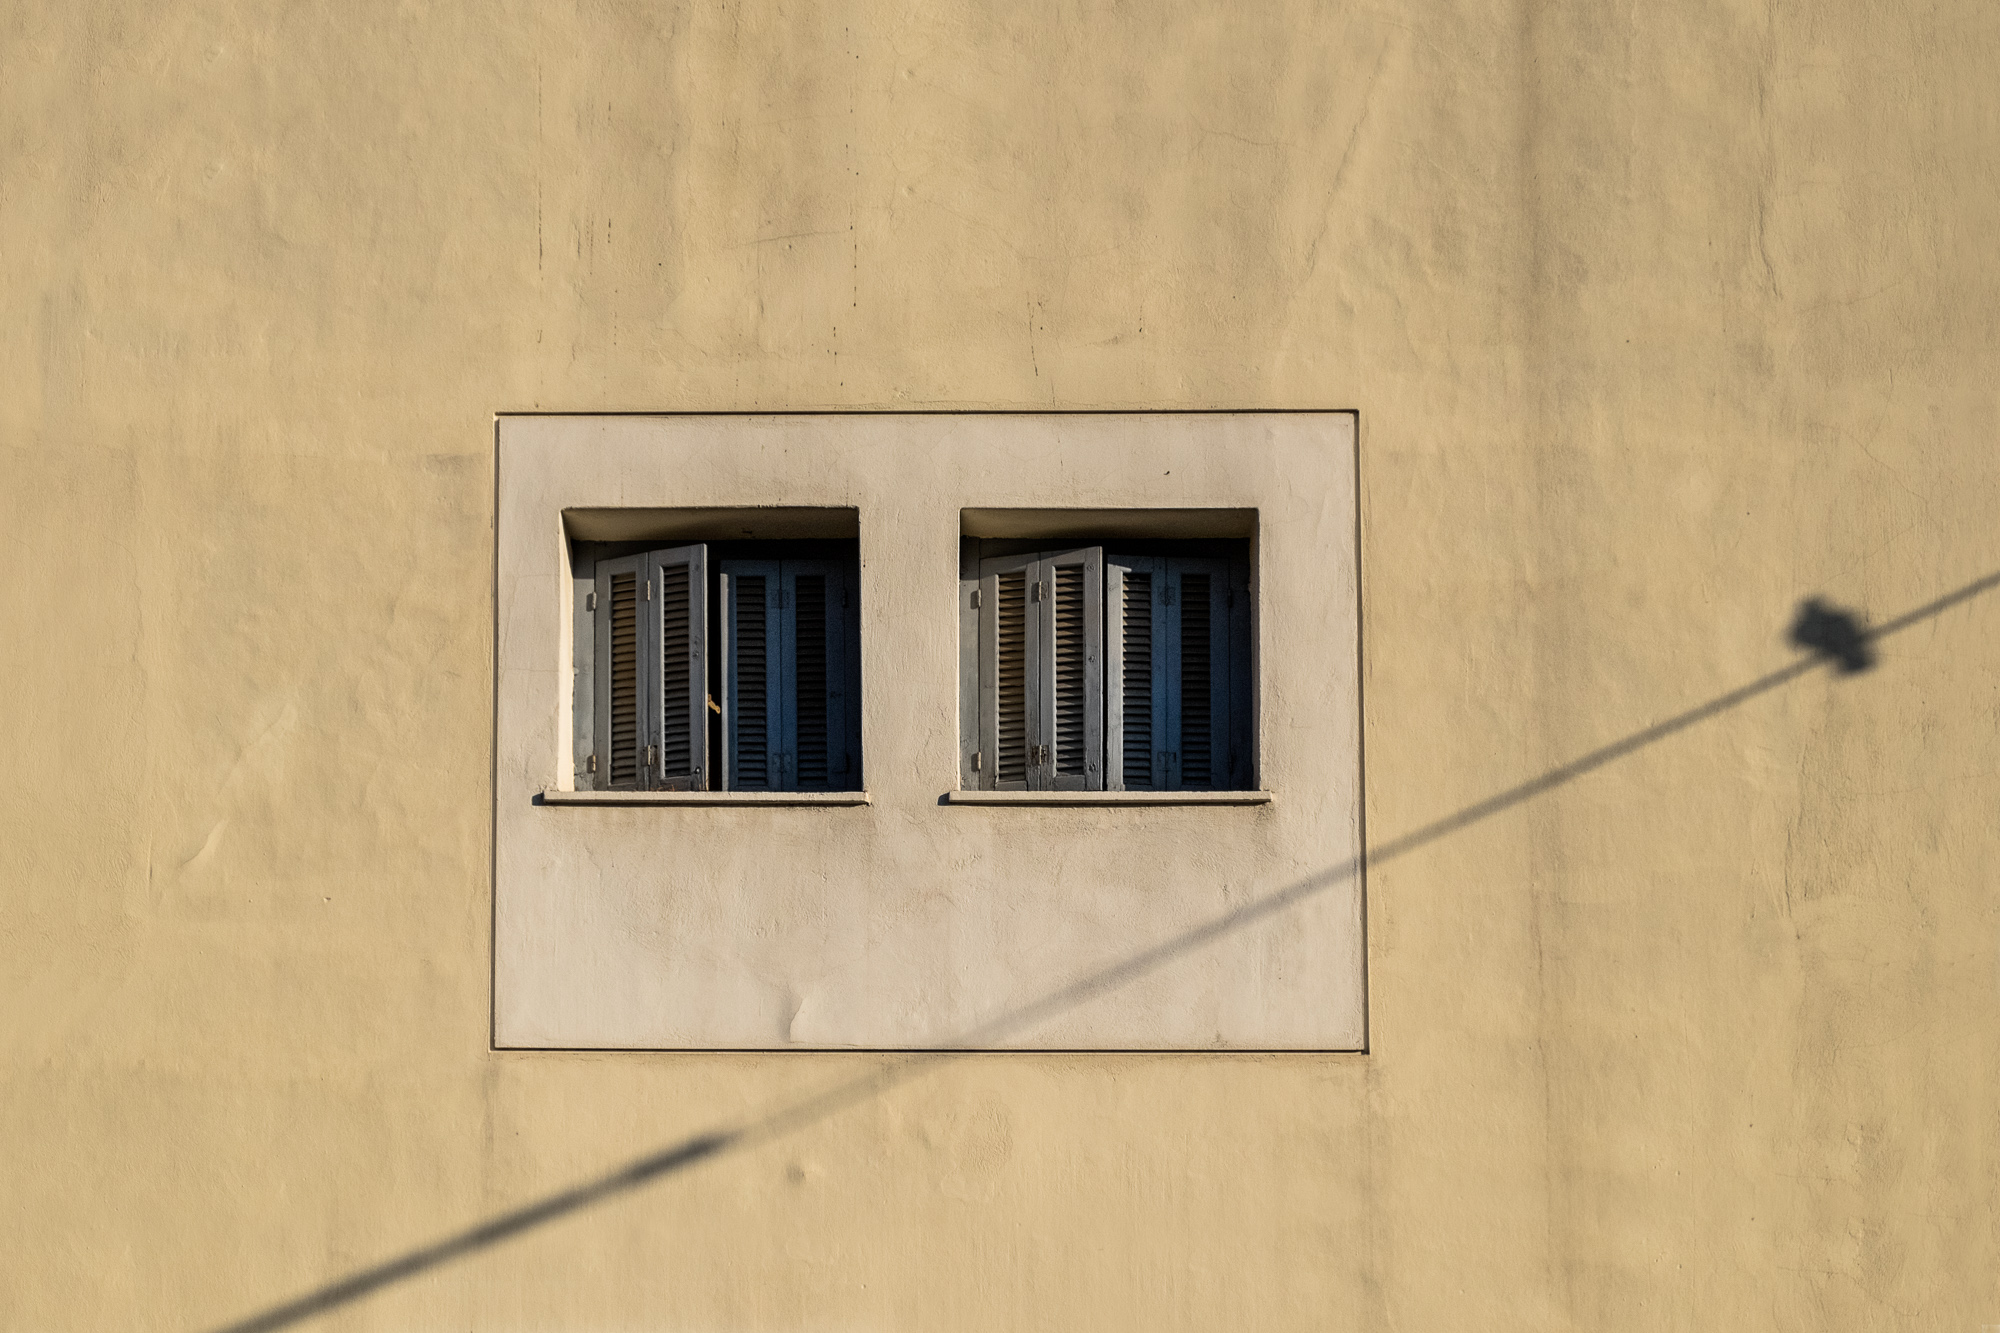 Projection02-Detsis_2014_00427_2